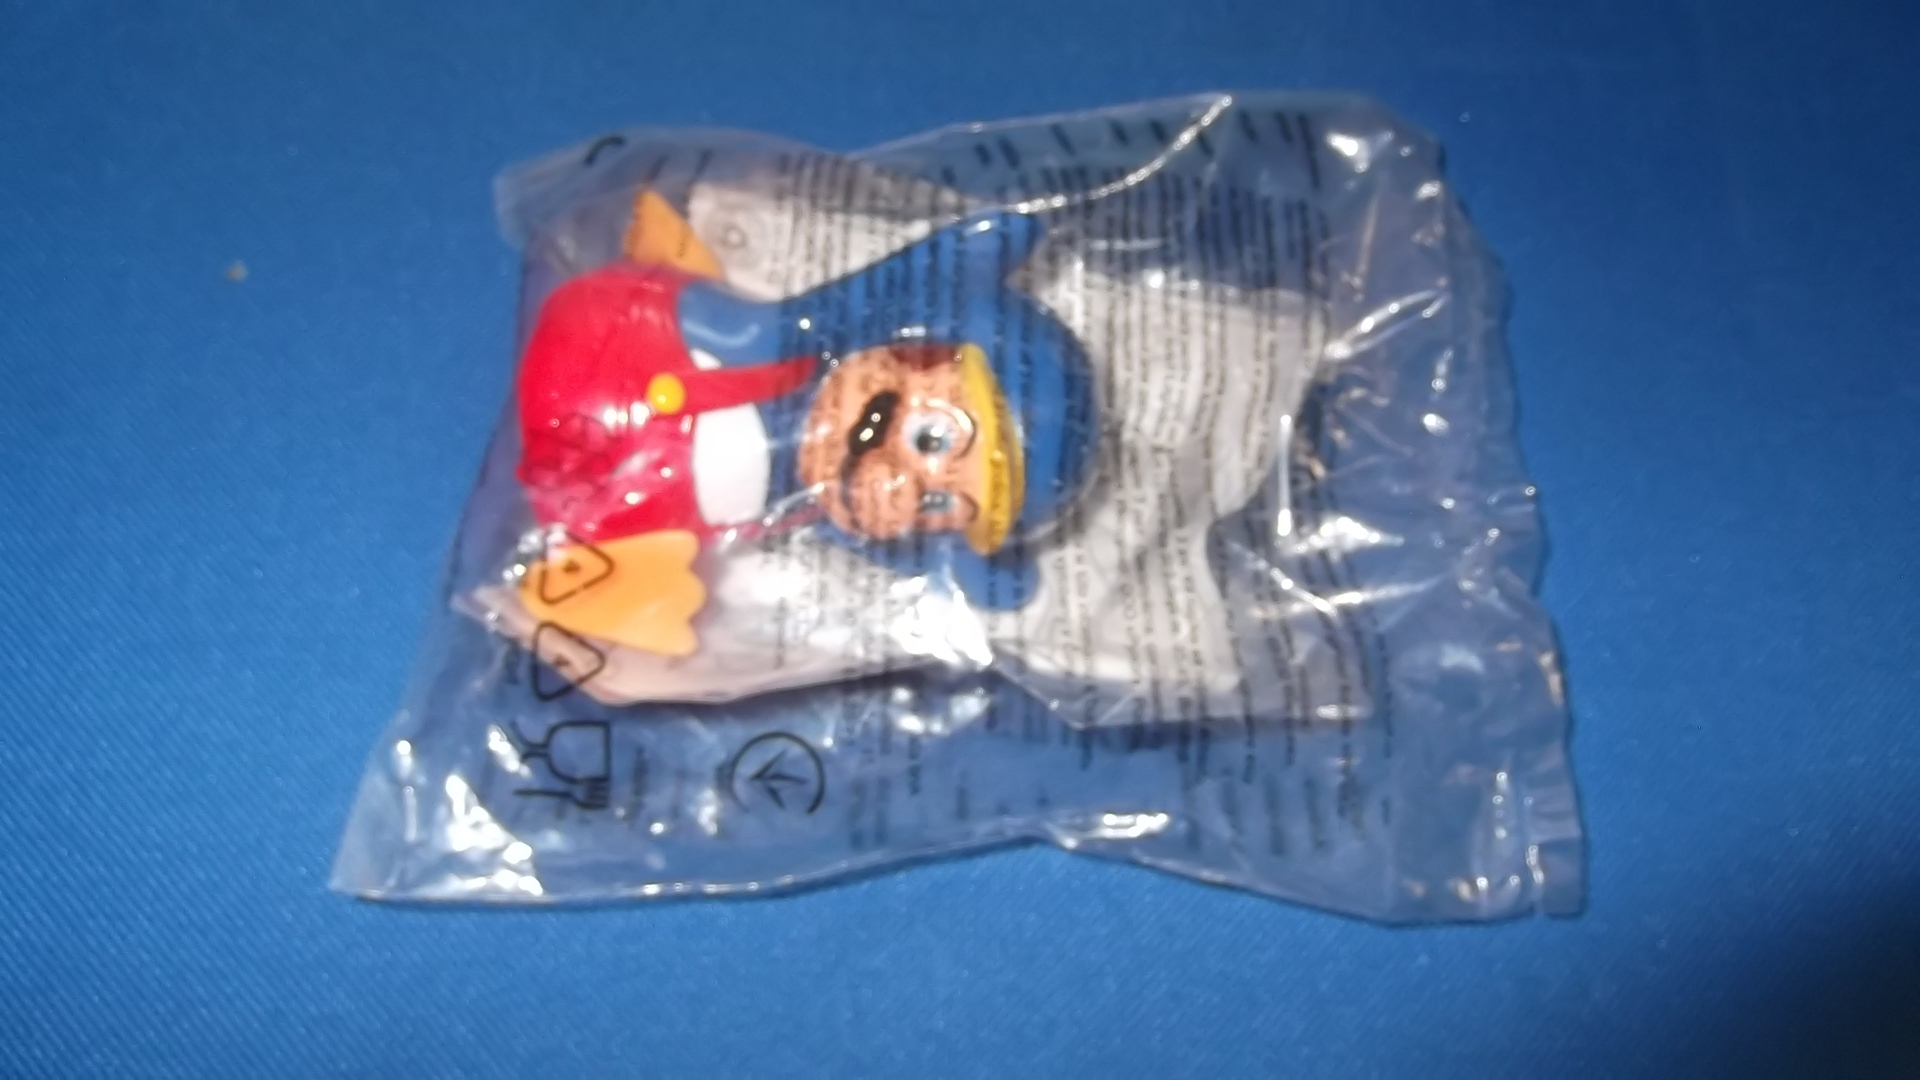 McDonalds Super Mario Penguin Mario Toy From 2015 New